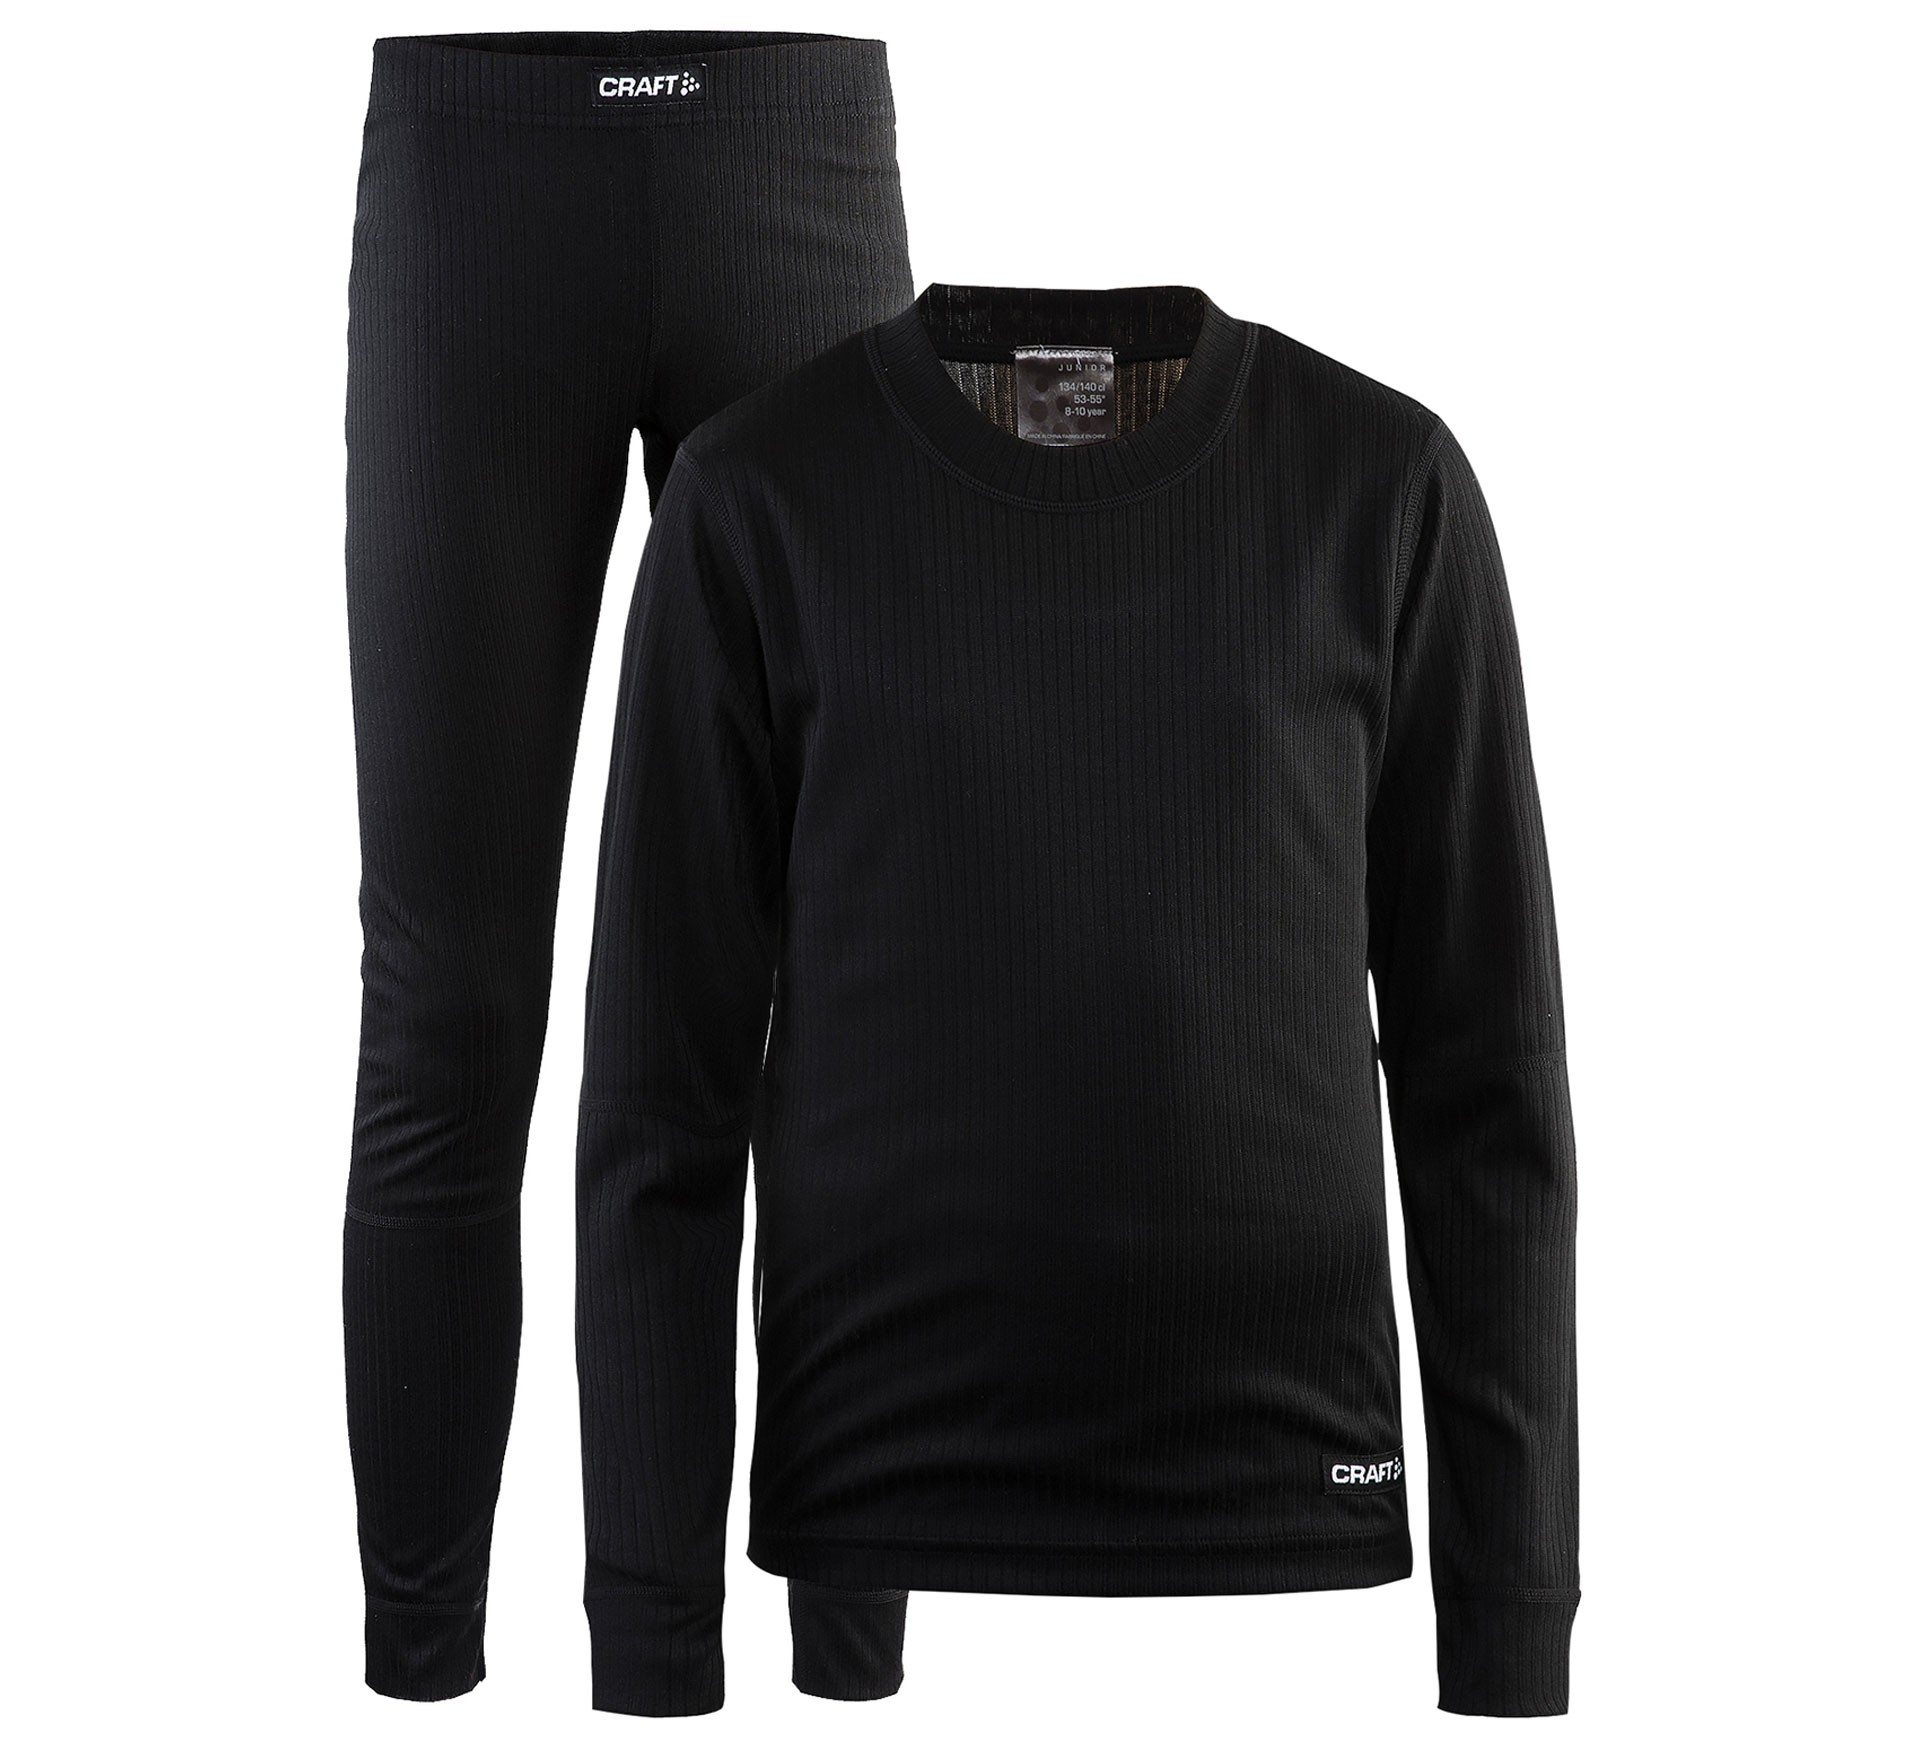 Plutosport - Craft Baselayer Set Junior